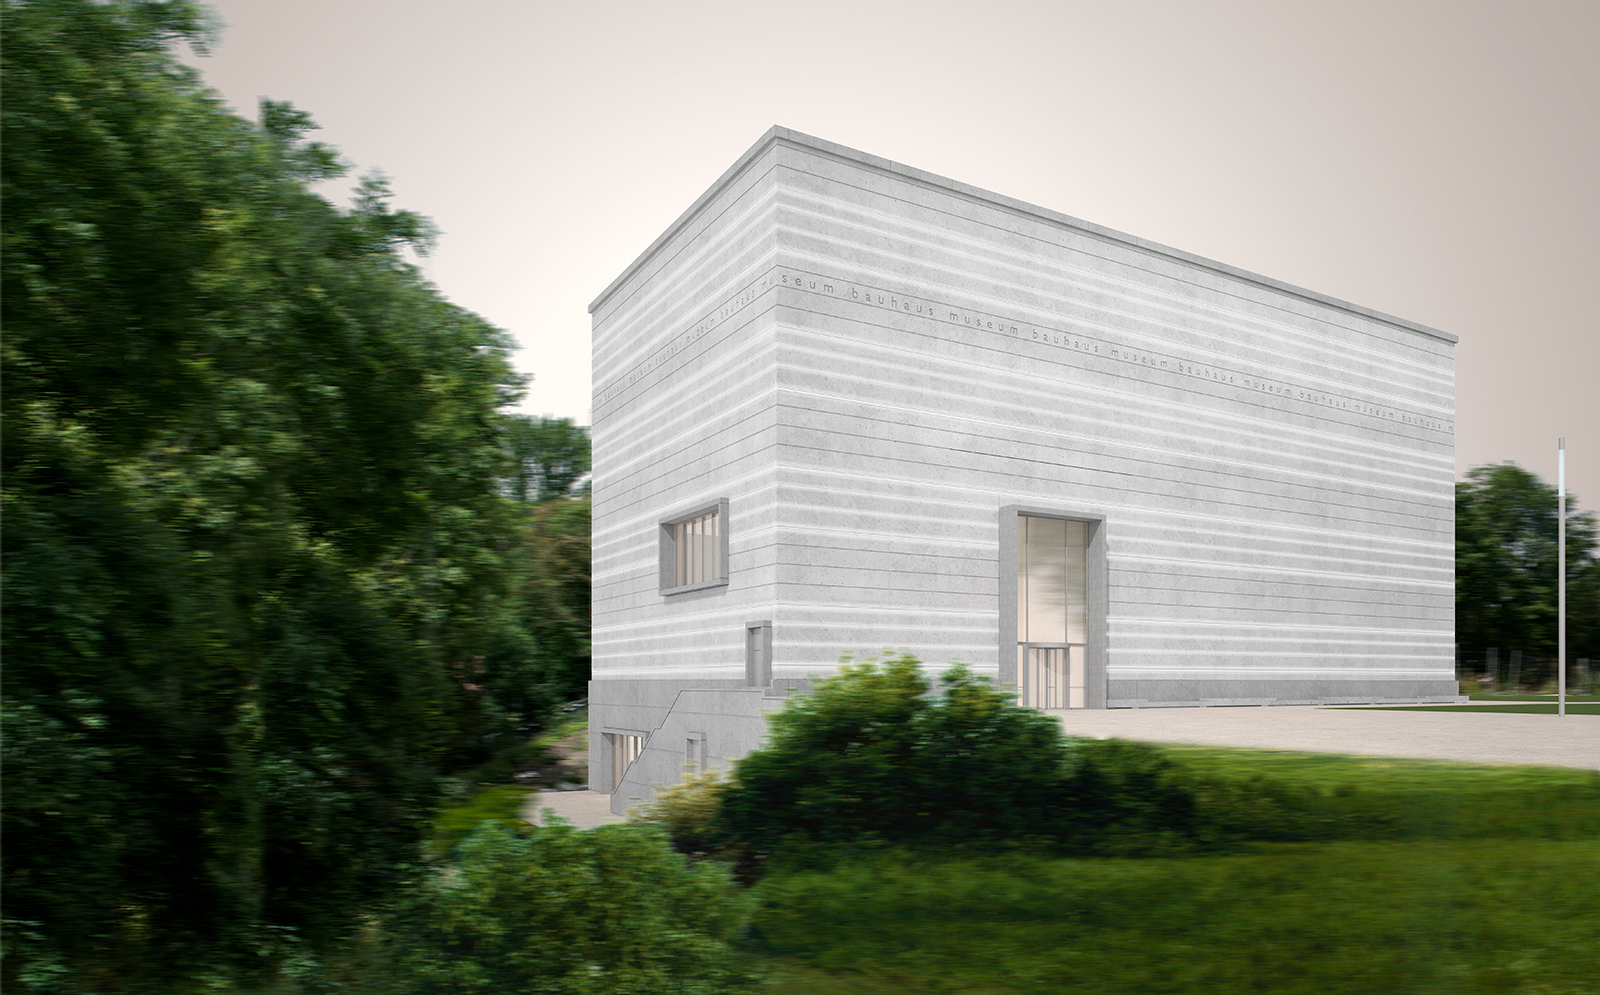 11 new museums opening in 2019: Bauhaus Museum Dessau